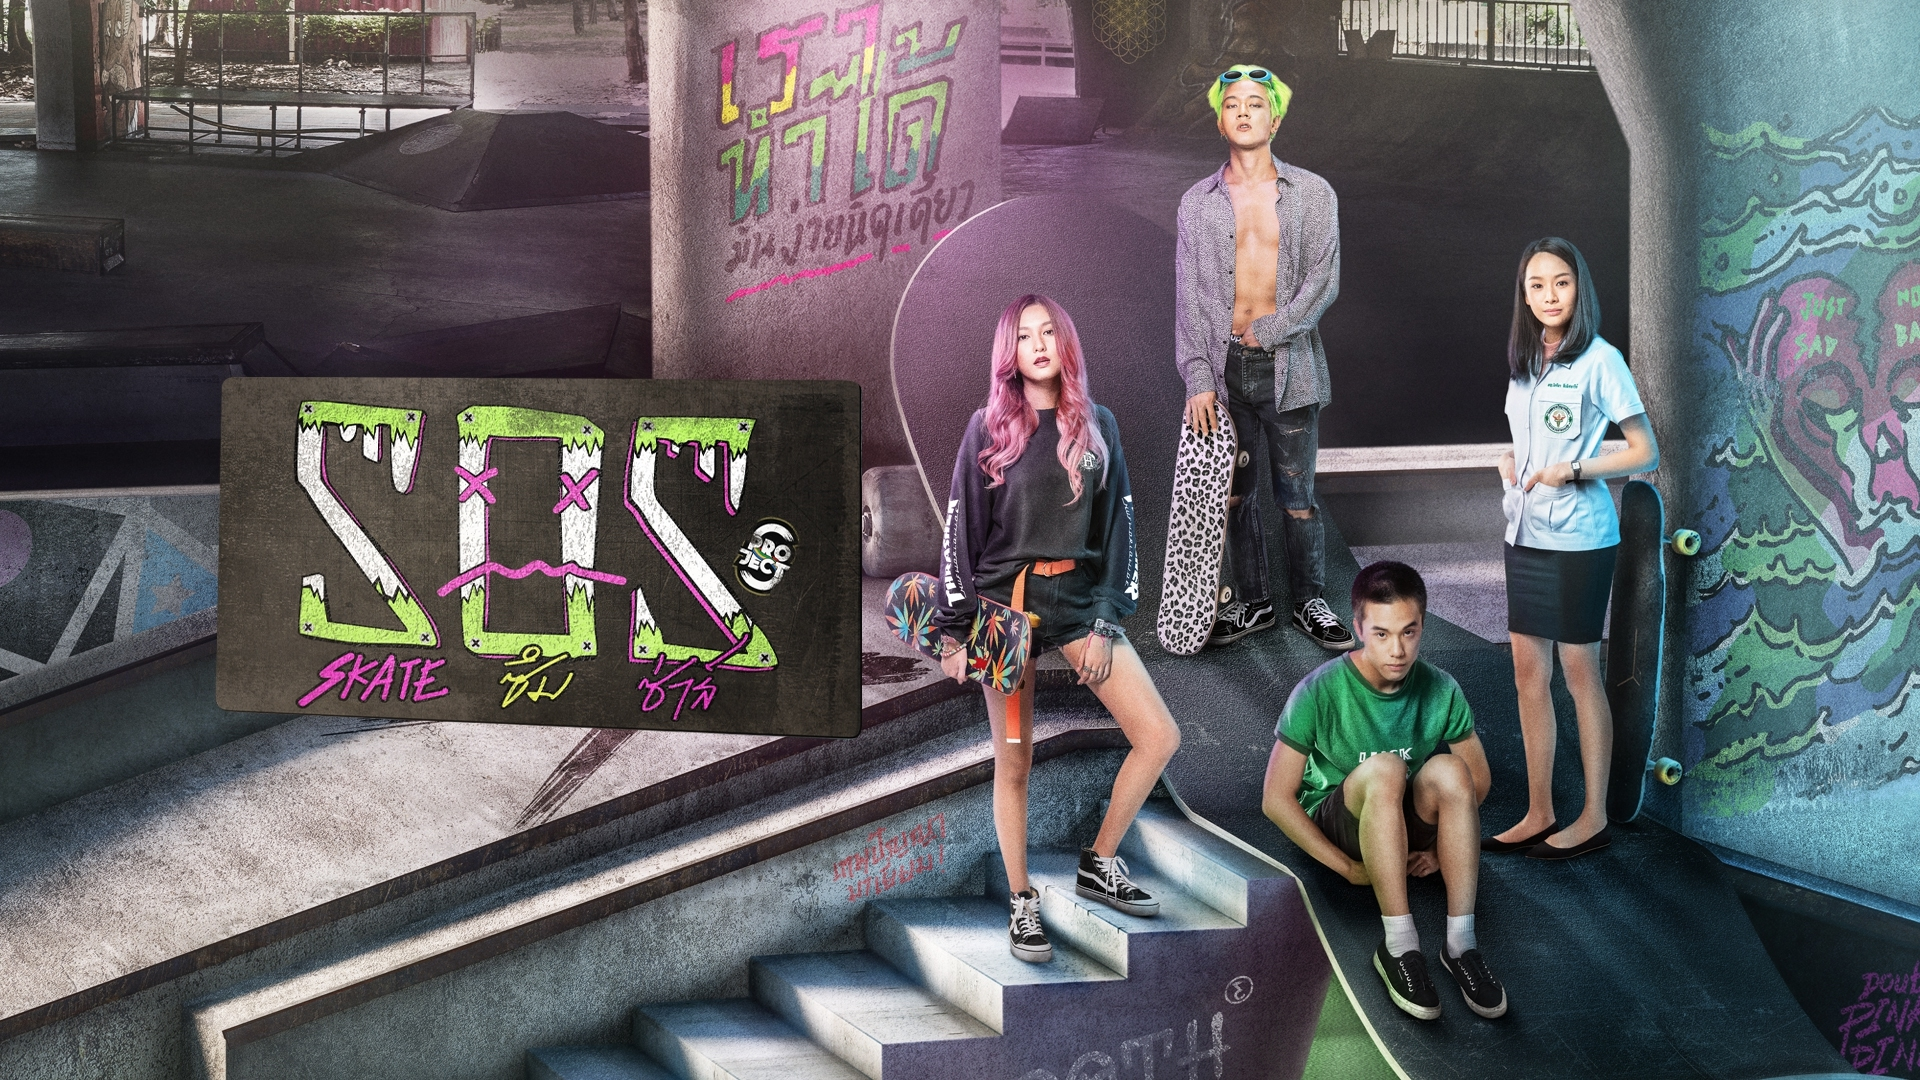 PROJECT S THE SERIES: SOS SKATE PROJECT S THE SERIES: SOS SKATE ตอนที่ 6